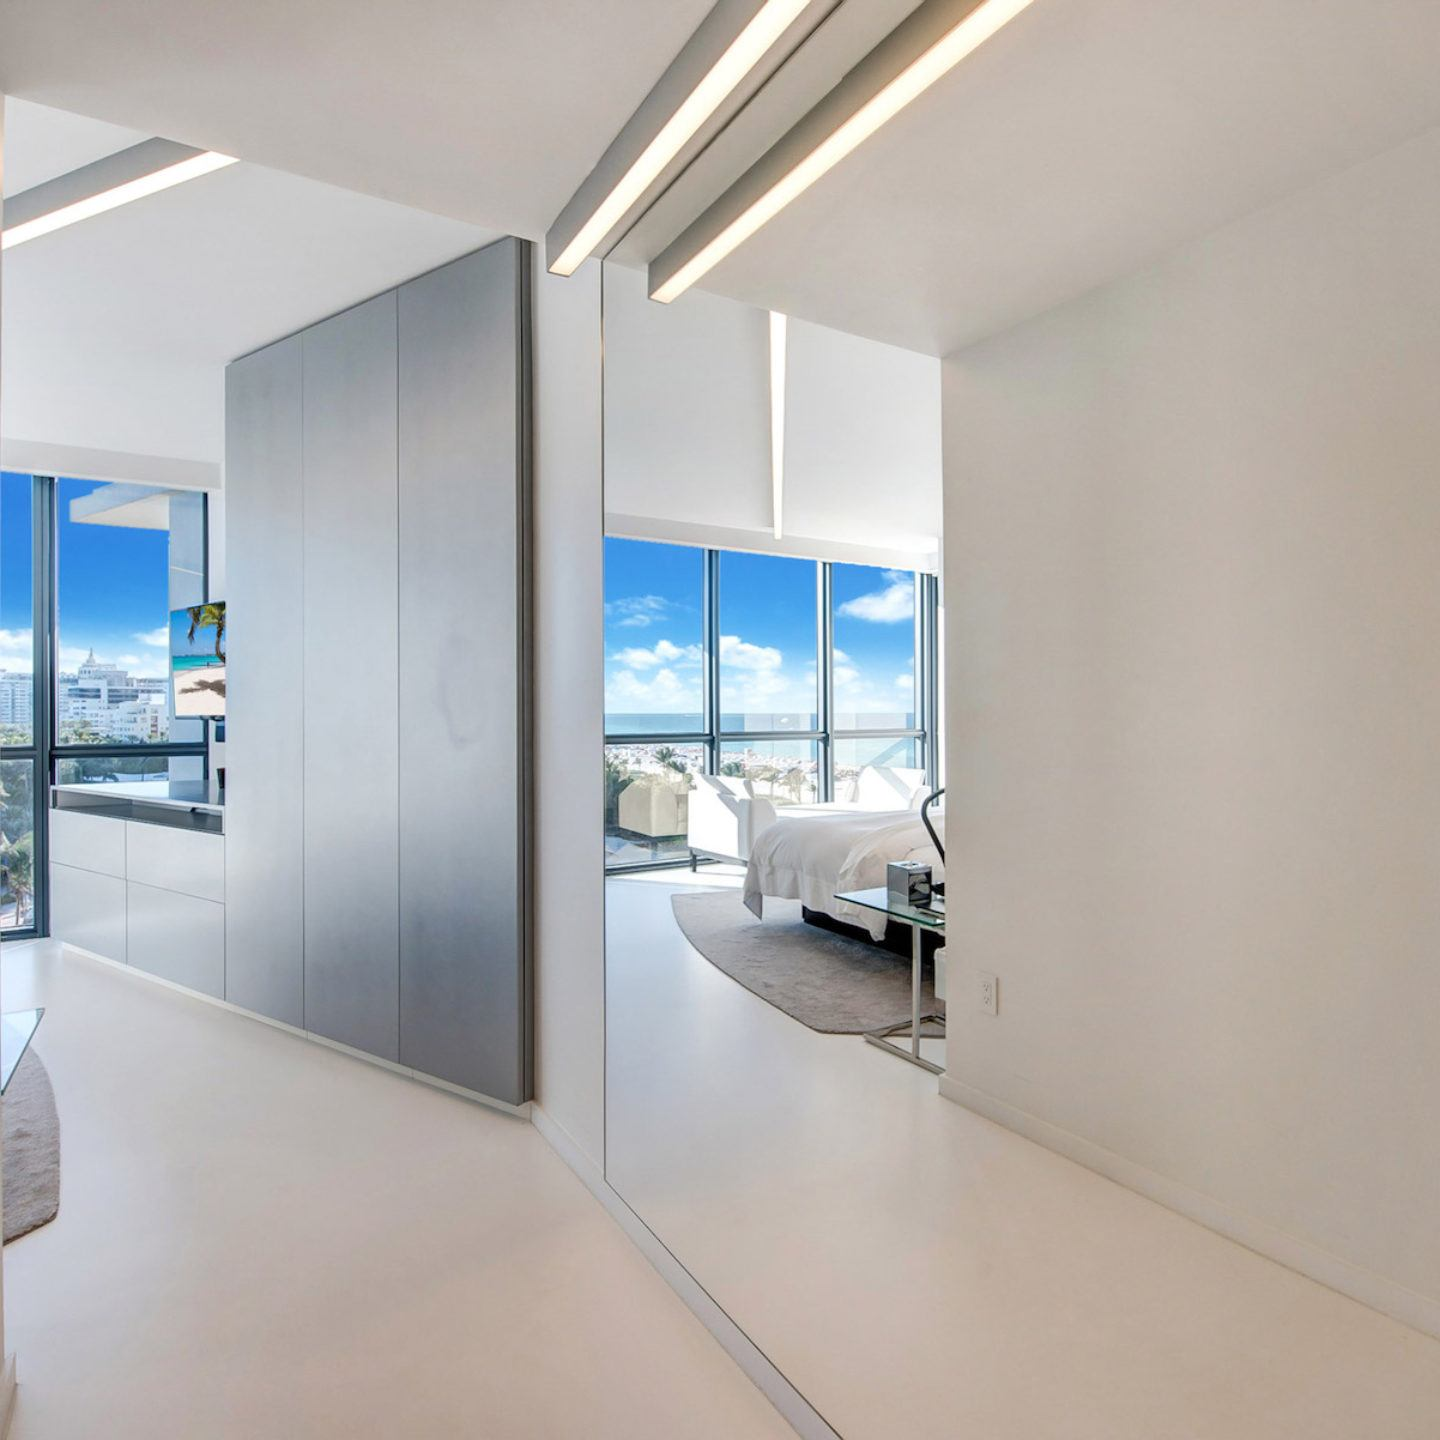 iGNANT-Architecture-Zaha-Hadid-Beach-Apartment-006